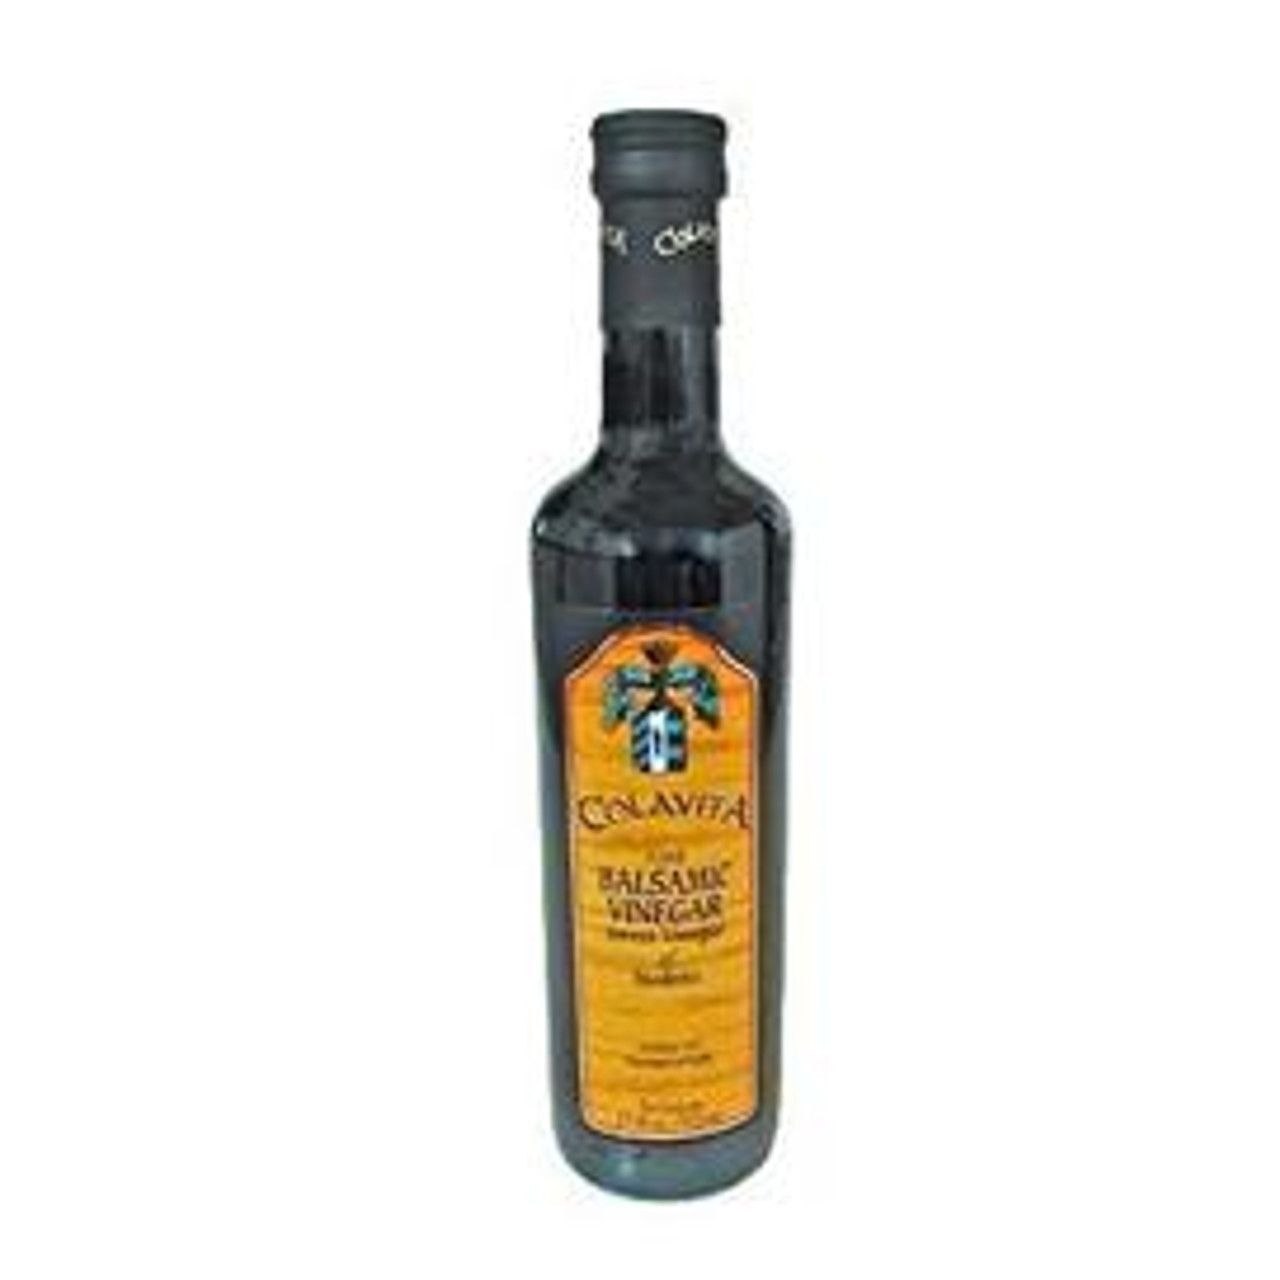 Colavita Balsamic Vinegar